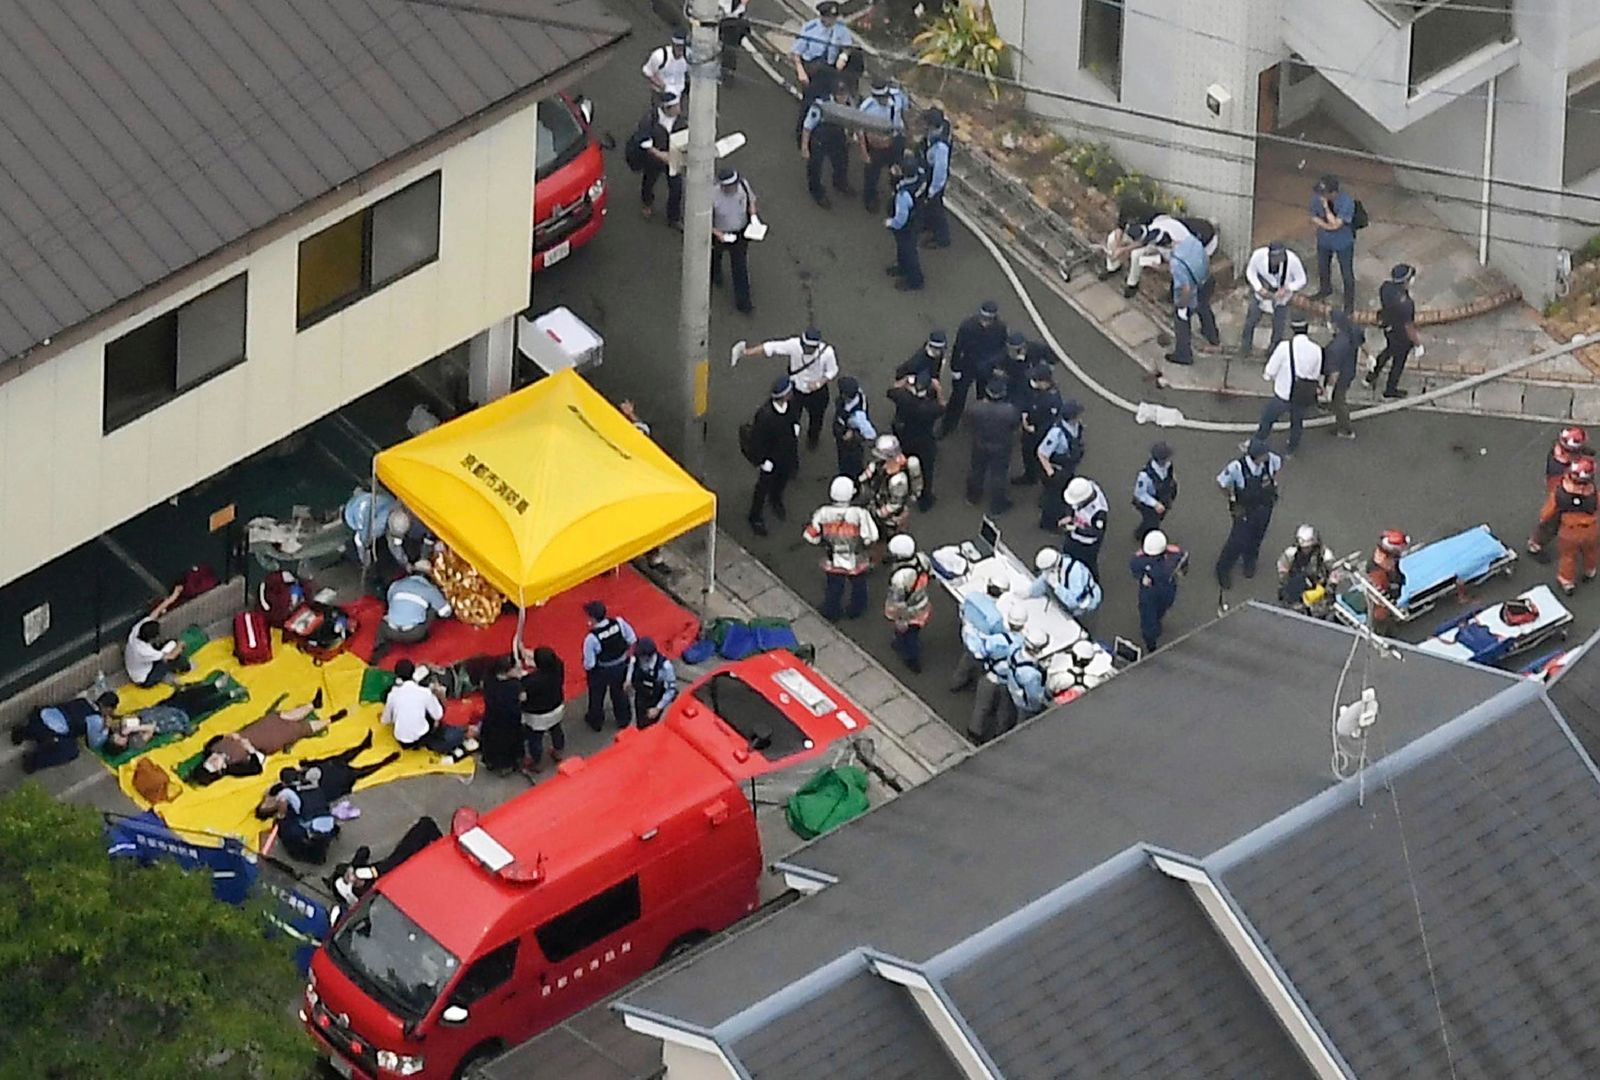 People injured in a fire are treated near a Kyoto Animation building in Kyoto, western Japan, Thursday, July 18, 2019. (Kyodo News via AP)